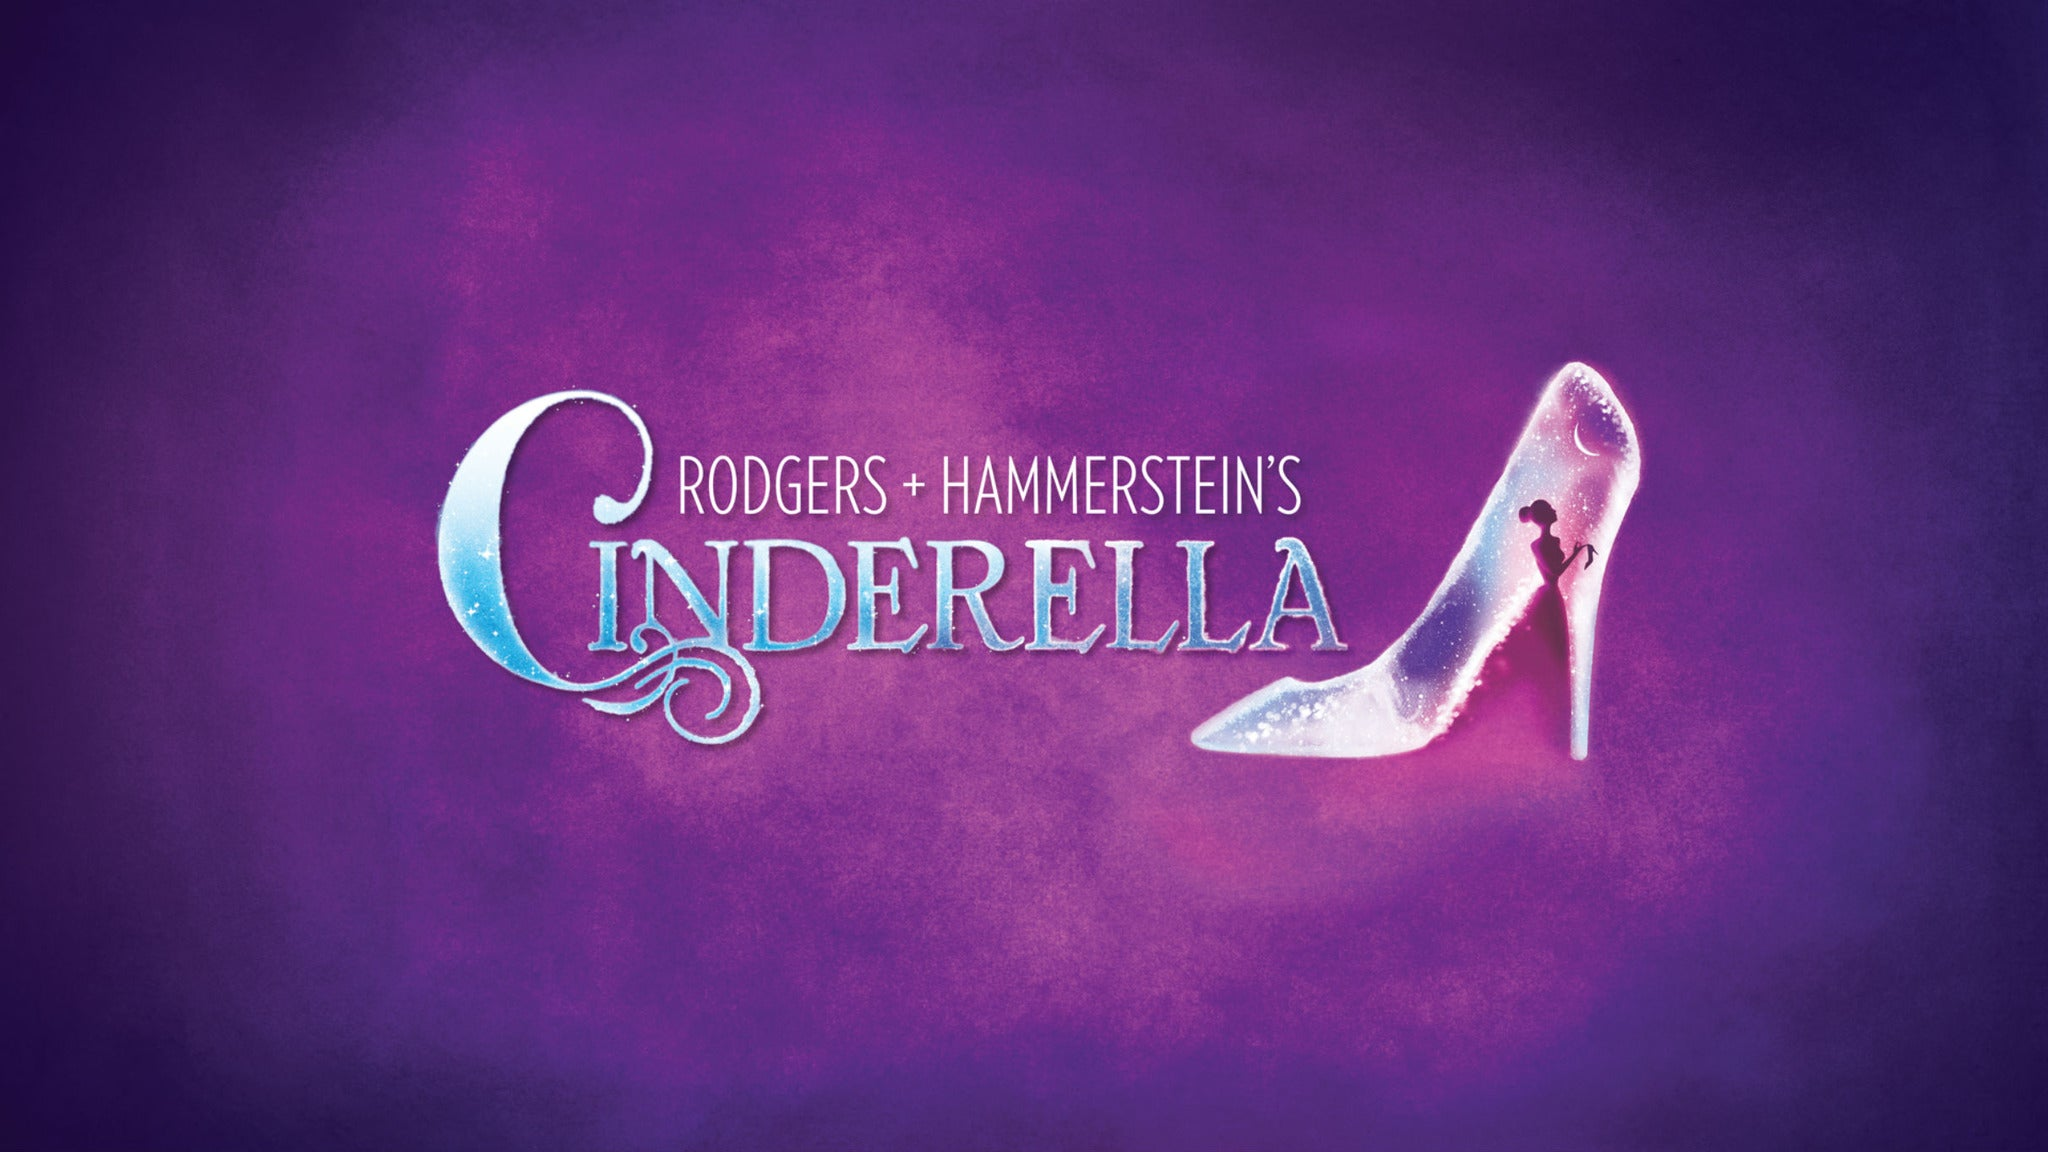 Cinderella-Theater at Weidner Center for the Performing Arts